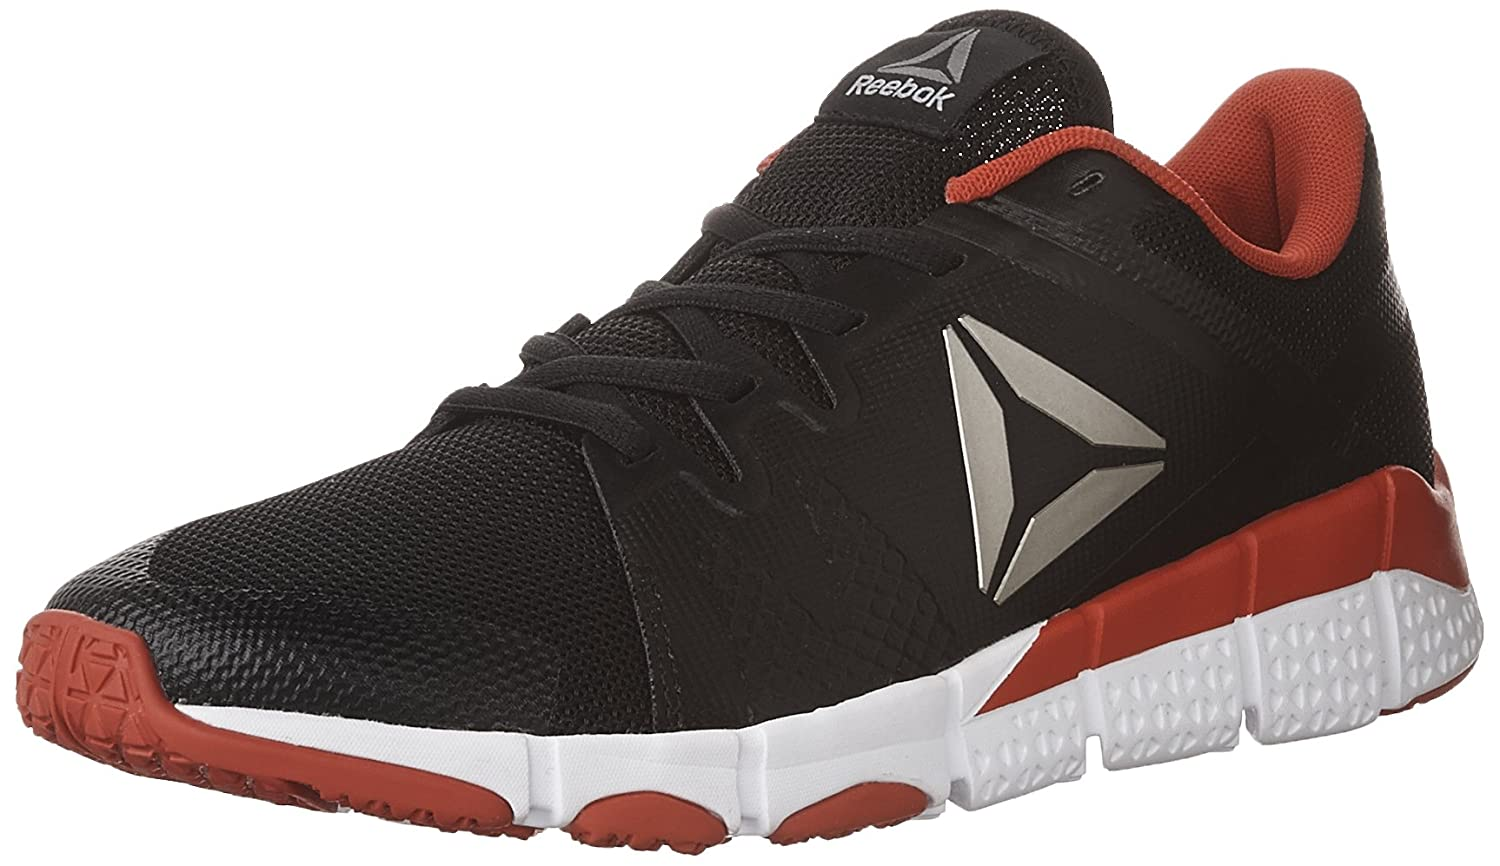 Reebok Men's Trainflex Cross-Trainer Shoe B01M5B5NOK 8.5 D(M) US|Black/White/Primal Red/Pewter/Grey